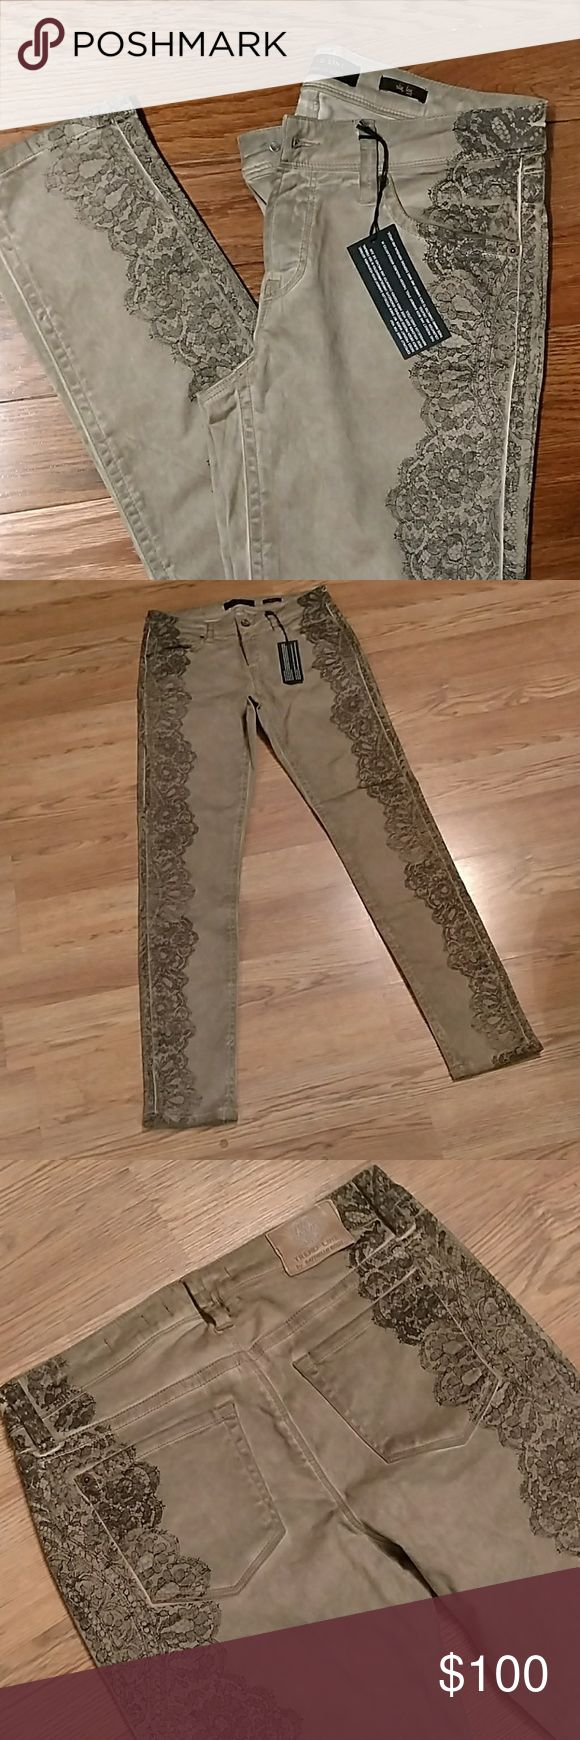 """Rafaello Rossi Trend Line NWT Sinty Lace print pants made in European Union by top designer Rafaello Rossi 98℅ Cotton and 2℅ spandex. Unique dying technique dusts the pants when applying the""""lace"""" portion. Classic 5 pocket with zip and button fly. Slim leg skinny fit. Measure 30"""" waist, 32"""" inseam and front rise is 8"""" European size 36 which seems to be about size 4 in US. New With Tags and Never been worn. Rafaello Rossi Jeans Skinny"""